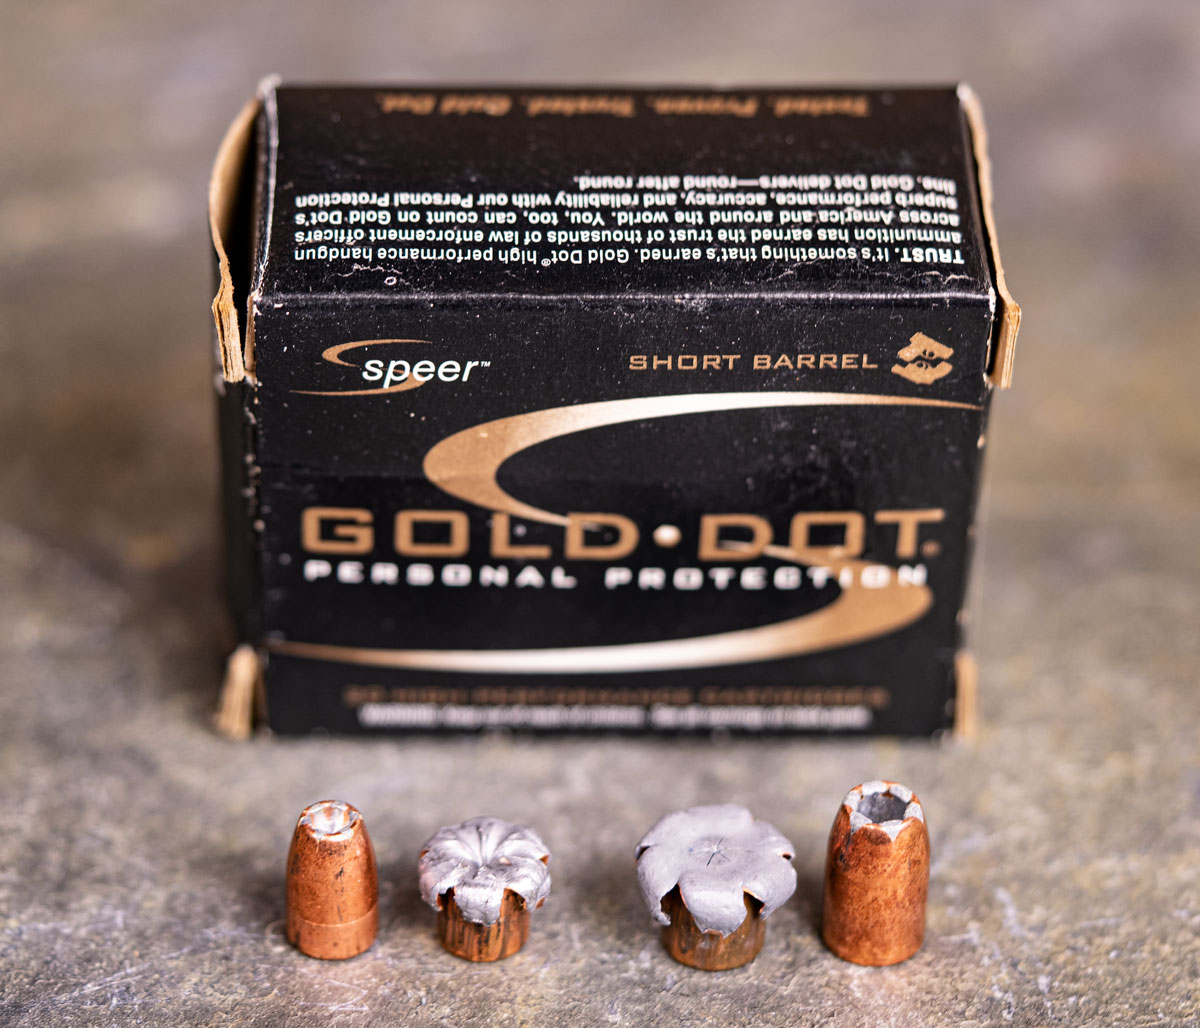 Speer Gold Dot 9mm ammo